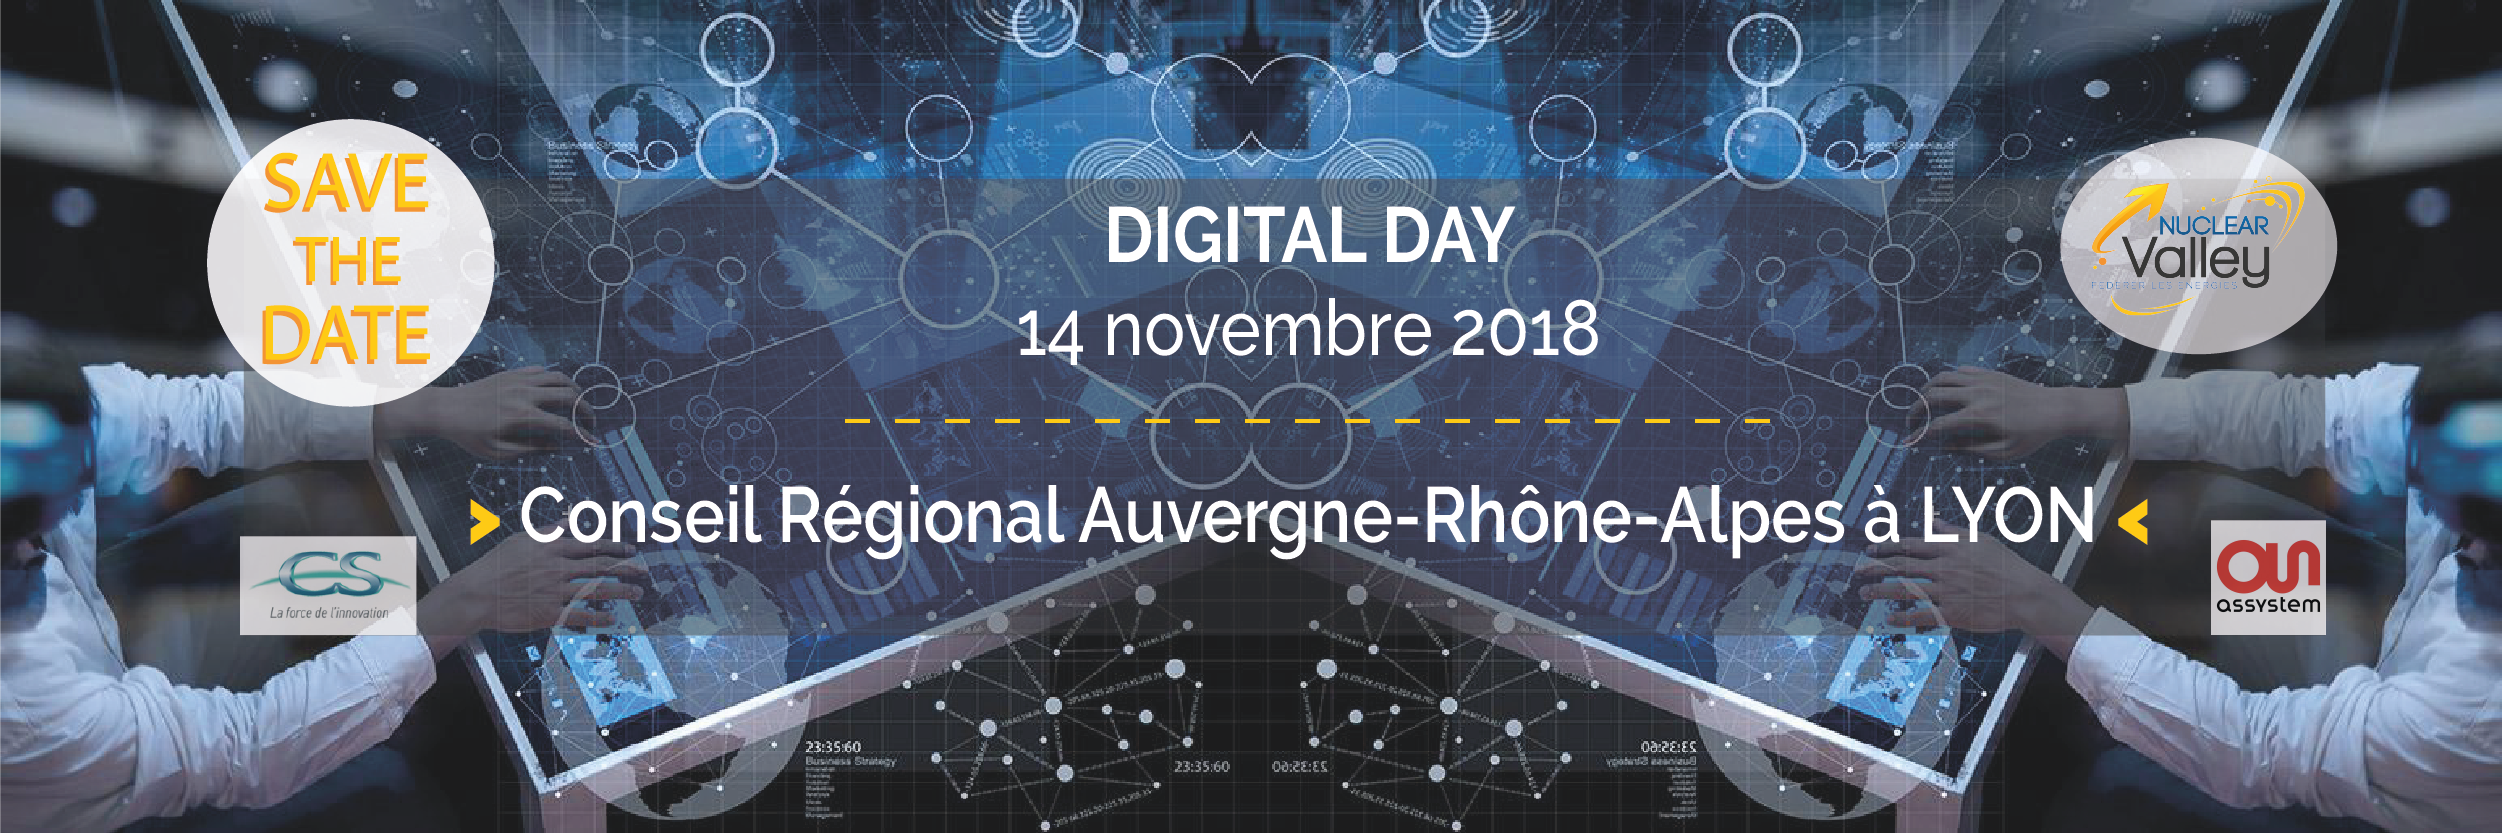 Participez au Digital Day !